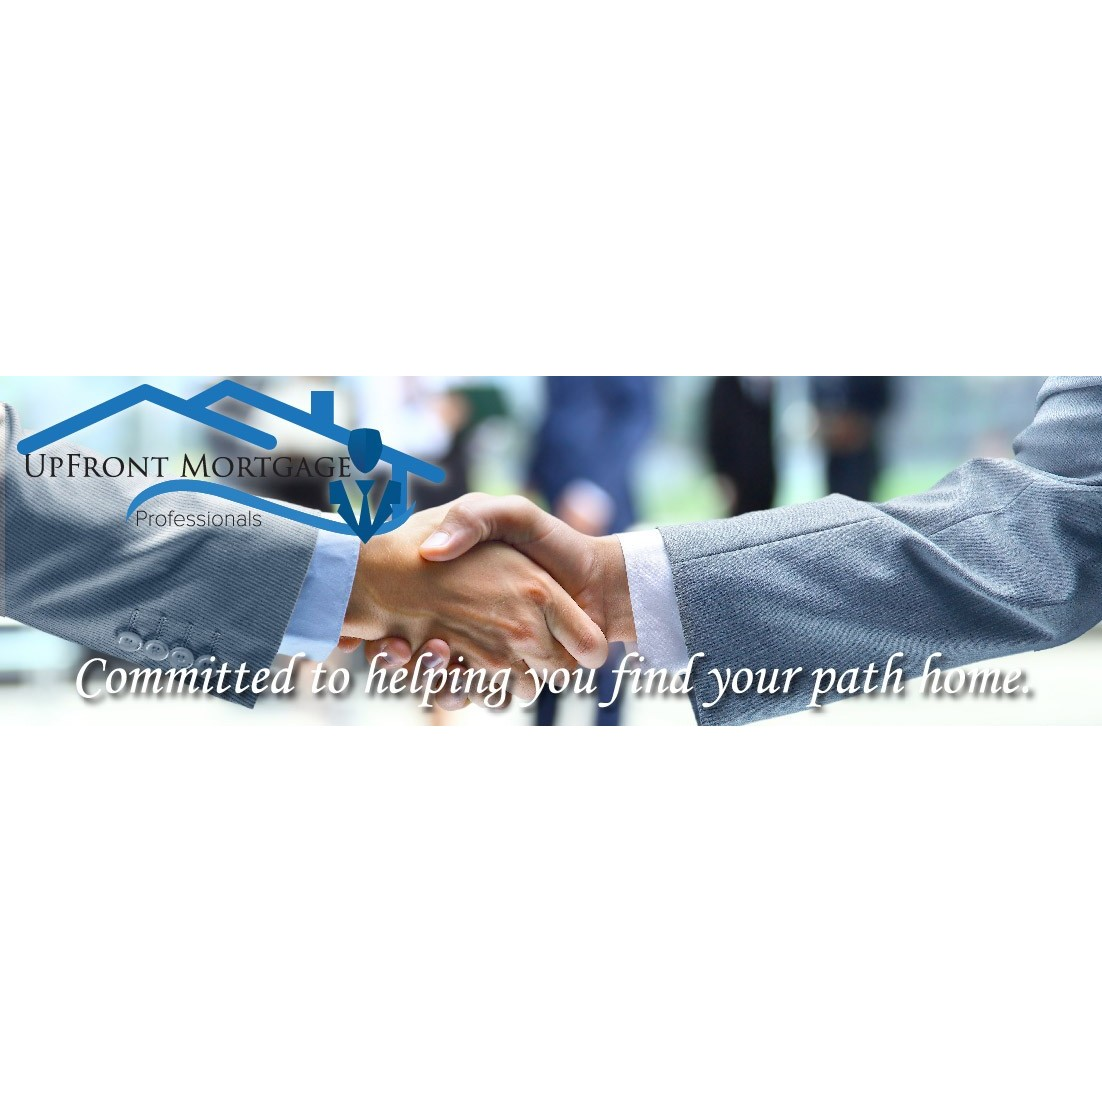 Up Front Loan, Mortgage & Refinance Professional